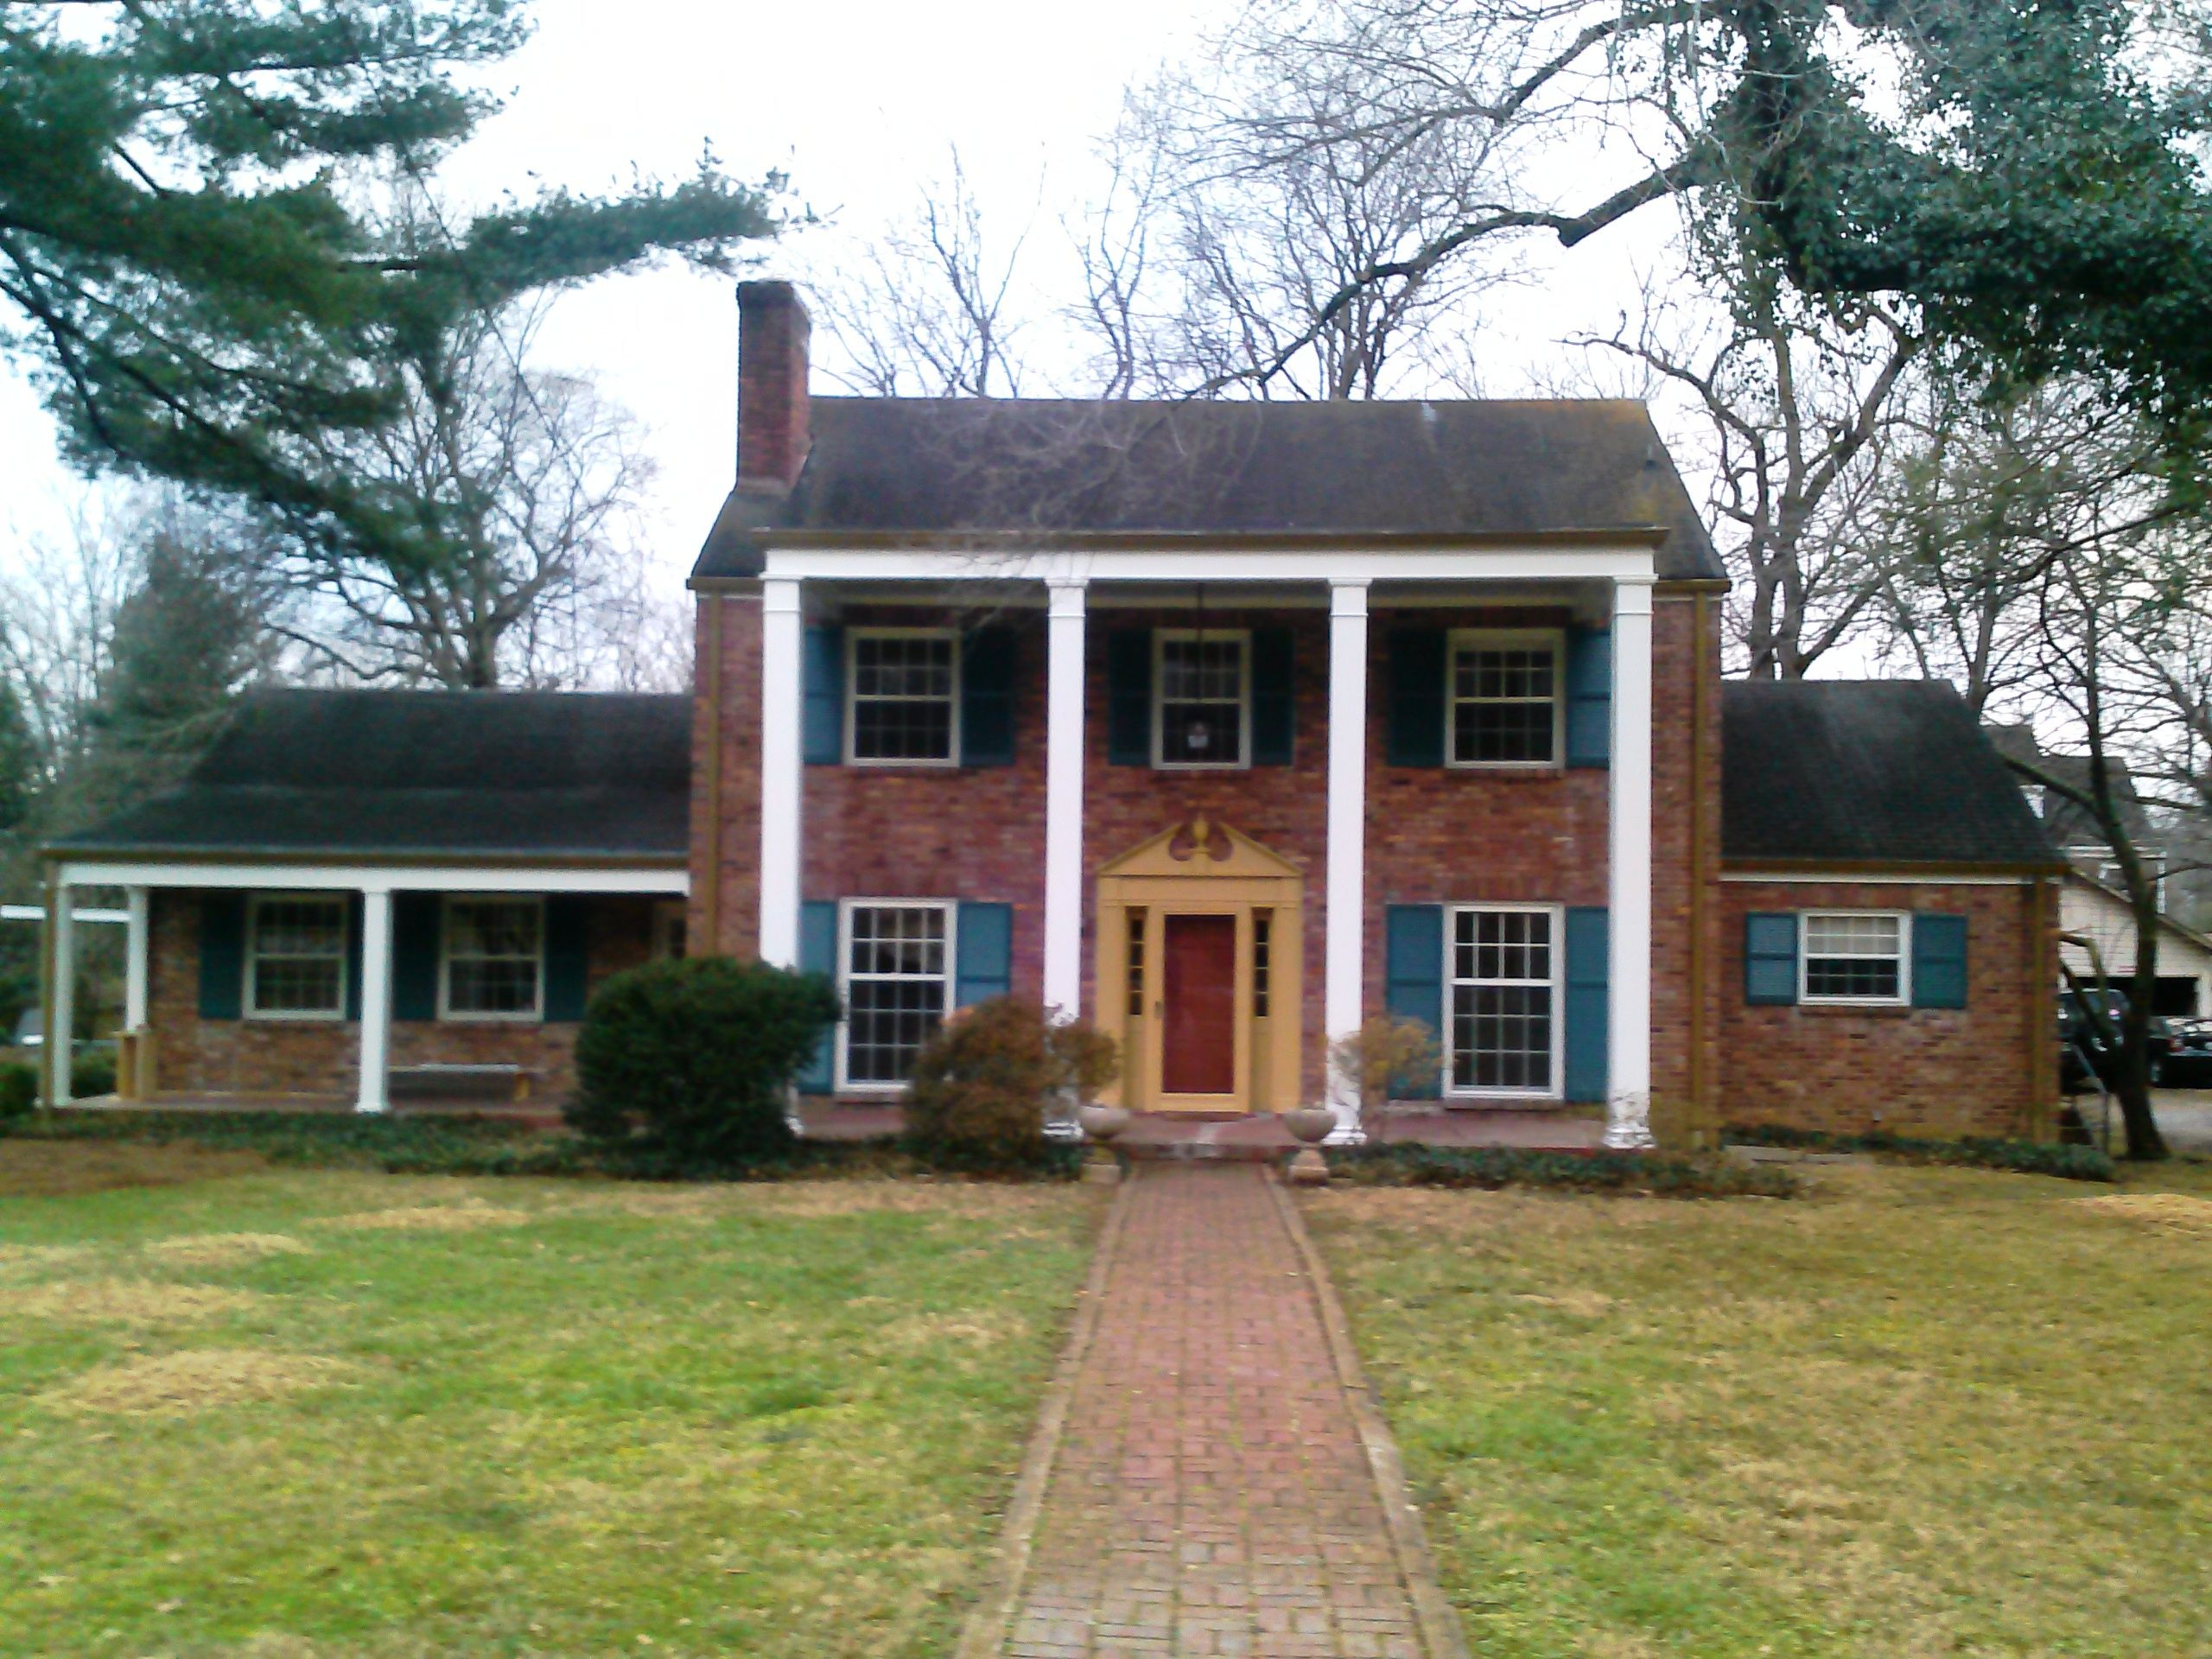 brick colonial revival | Built in 1938, this two-story, brick ...